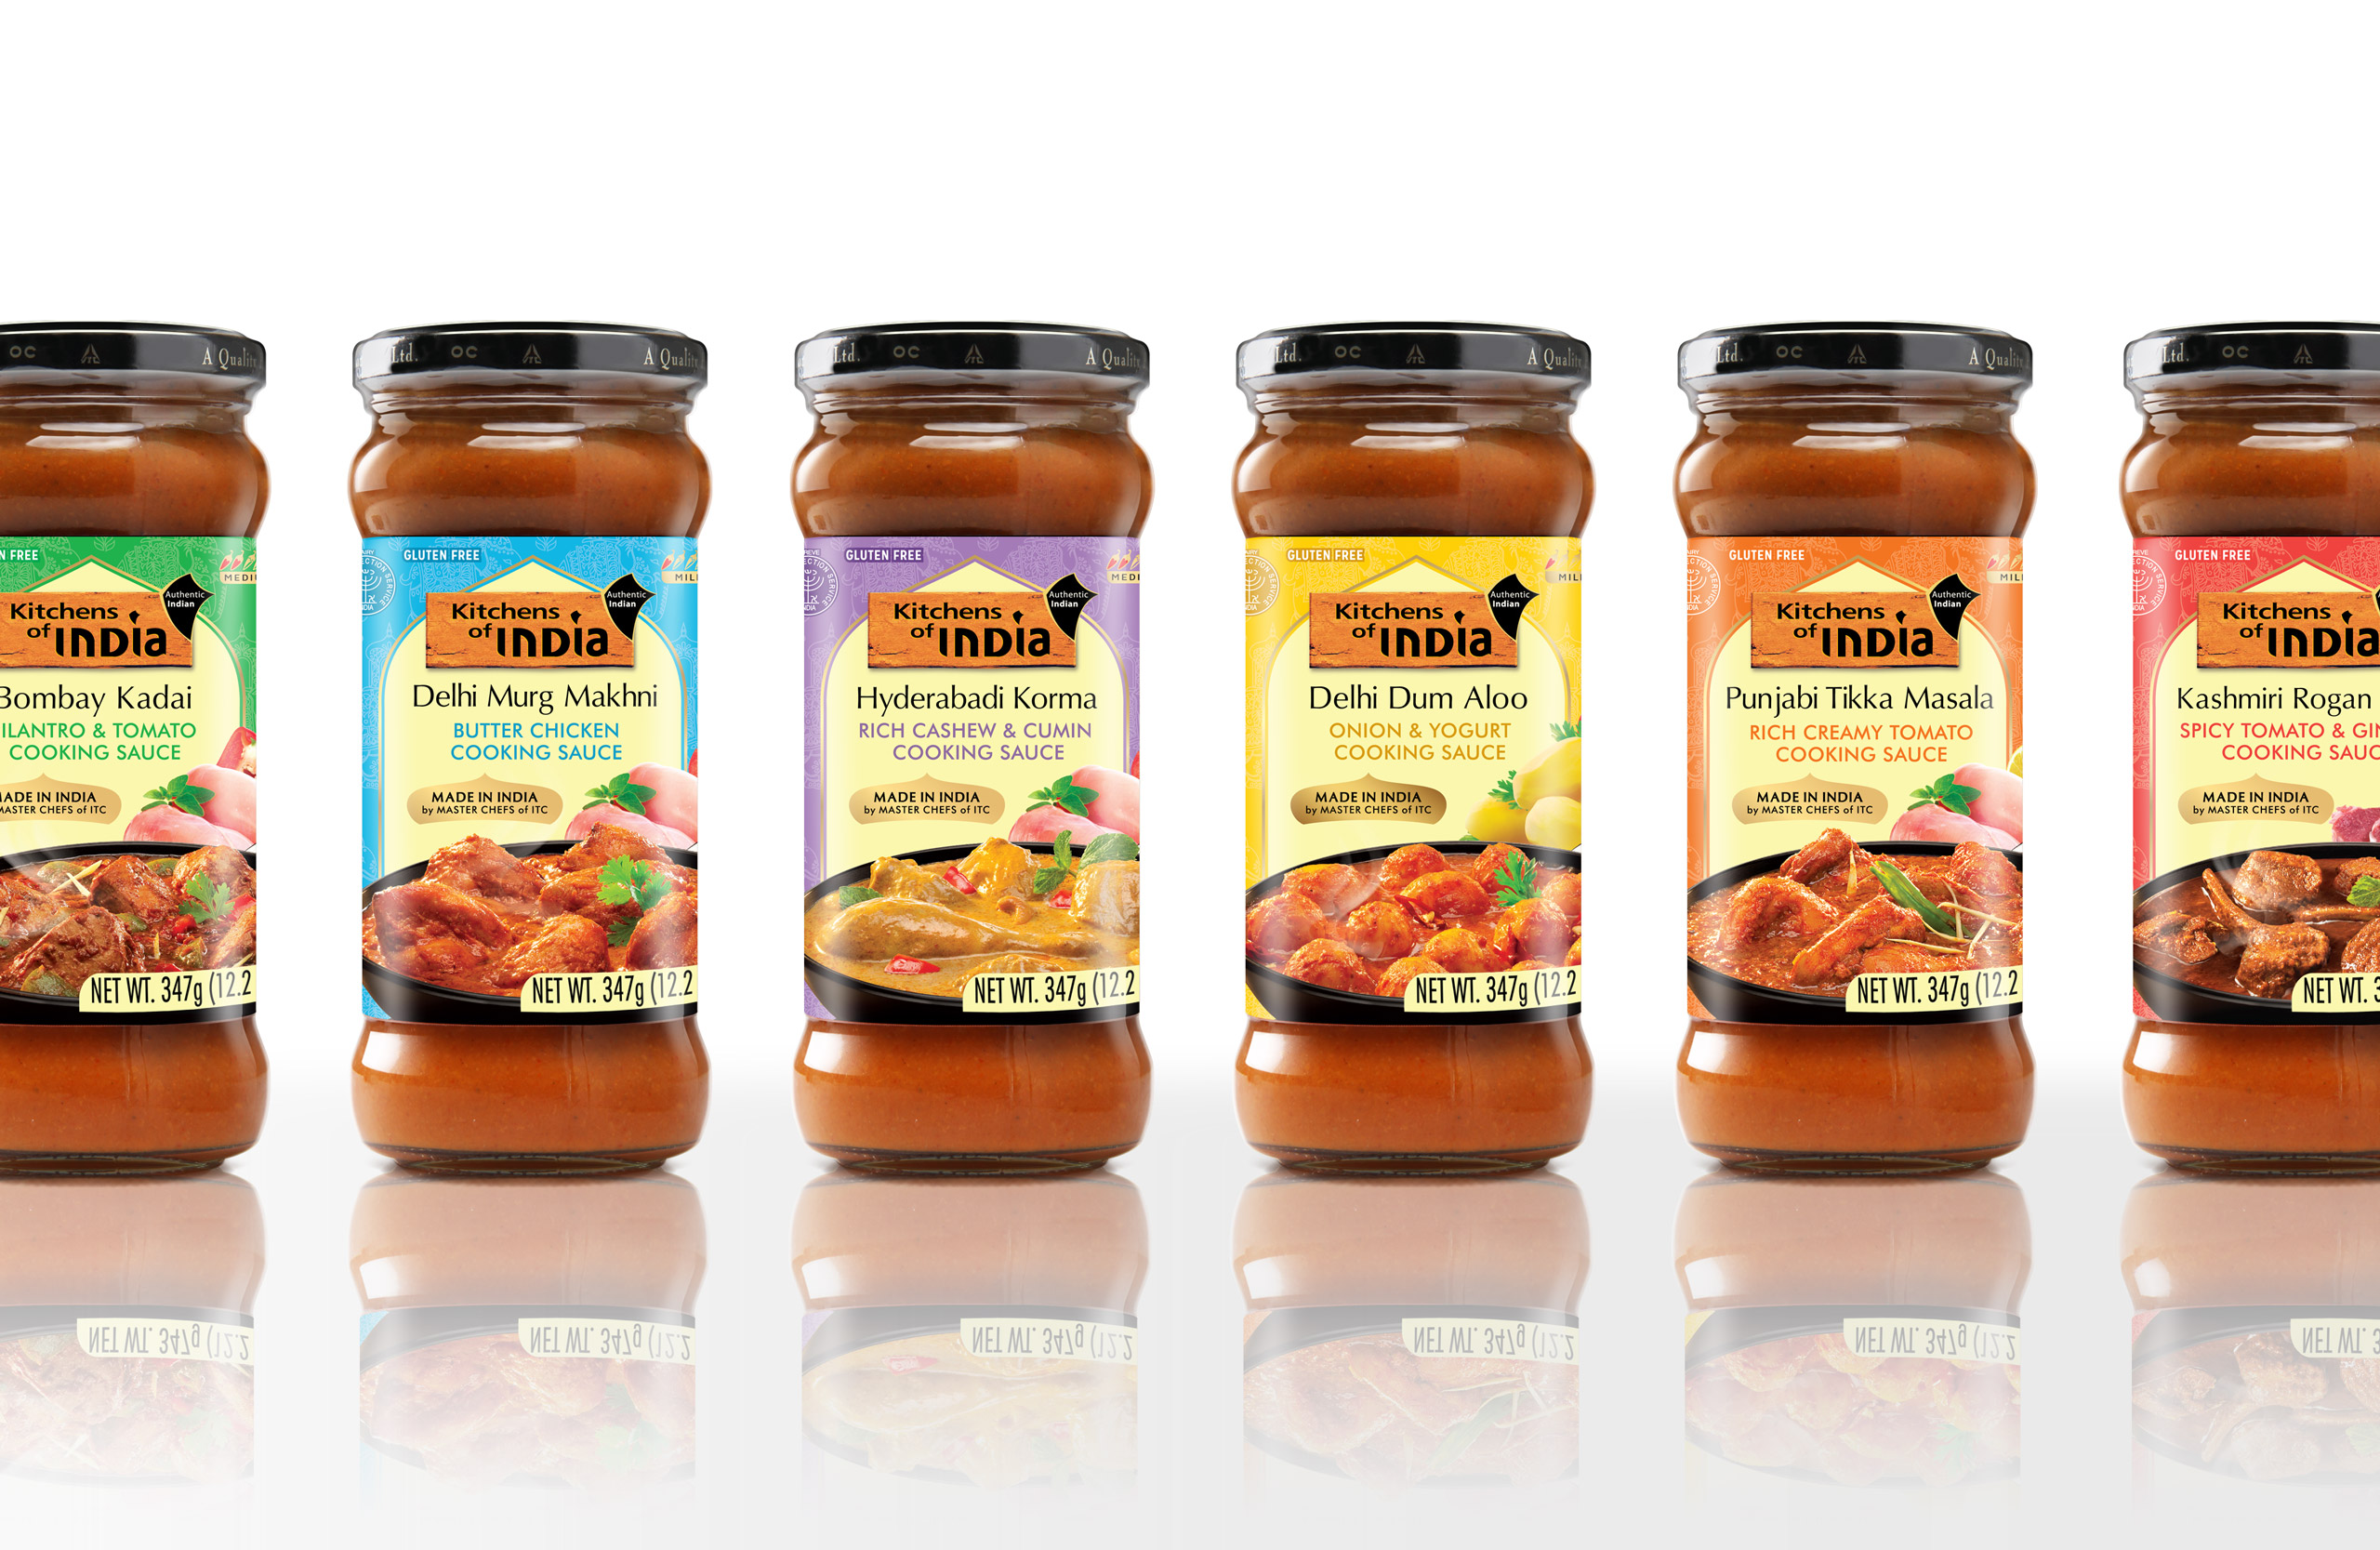 Authentic Indian cooking sauces branding, packaging and label design for ITC foods, India